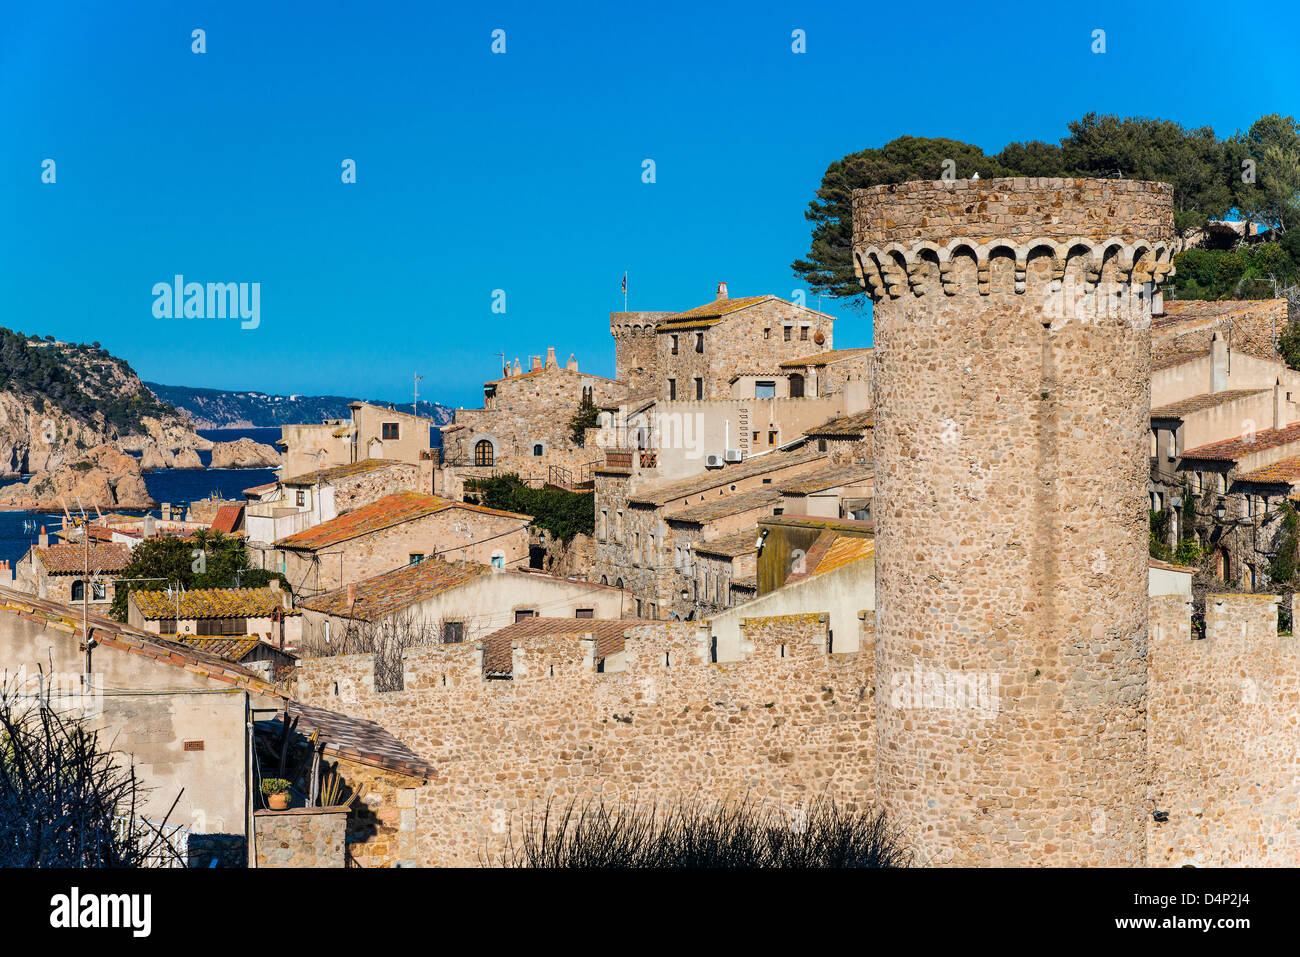 View over Vila Vella, the medieval old town of Tossa del Mar, Costa Brava, Catalonia, Spain - Stock Image